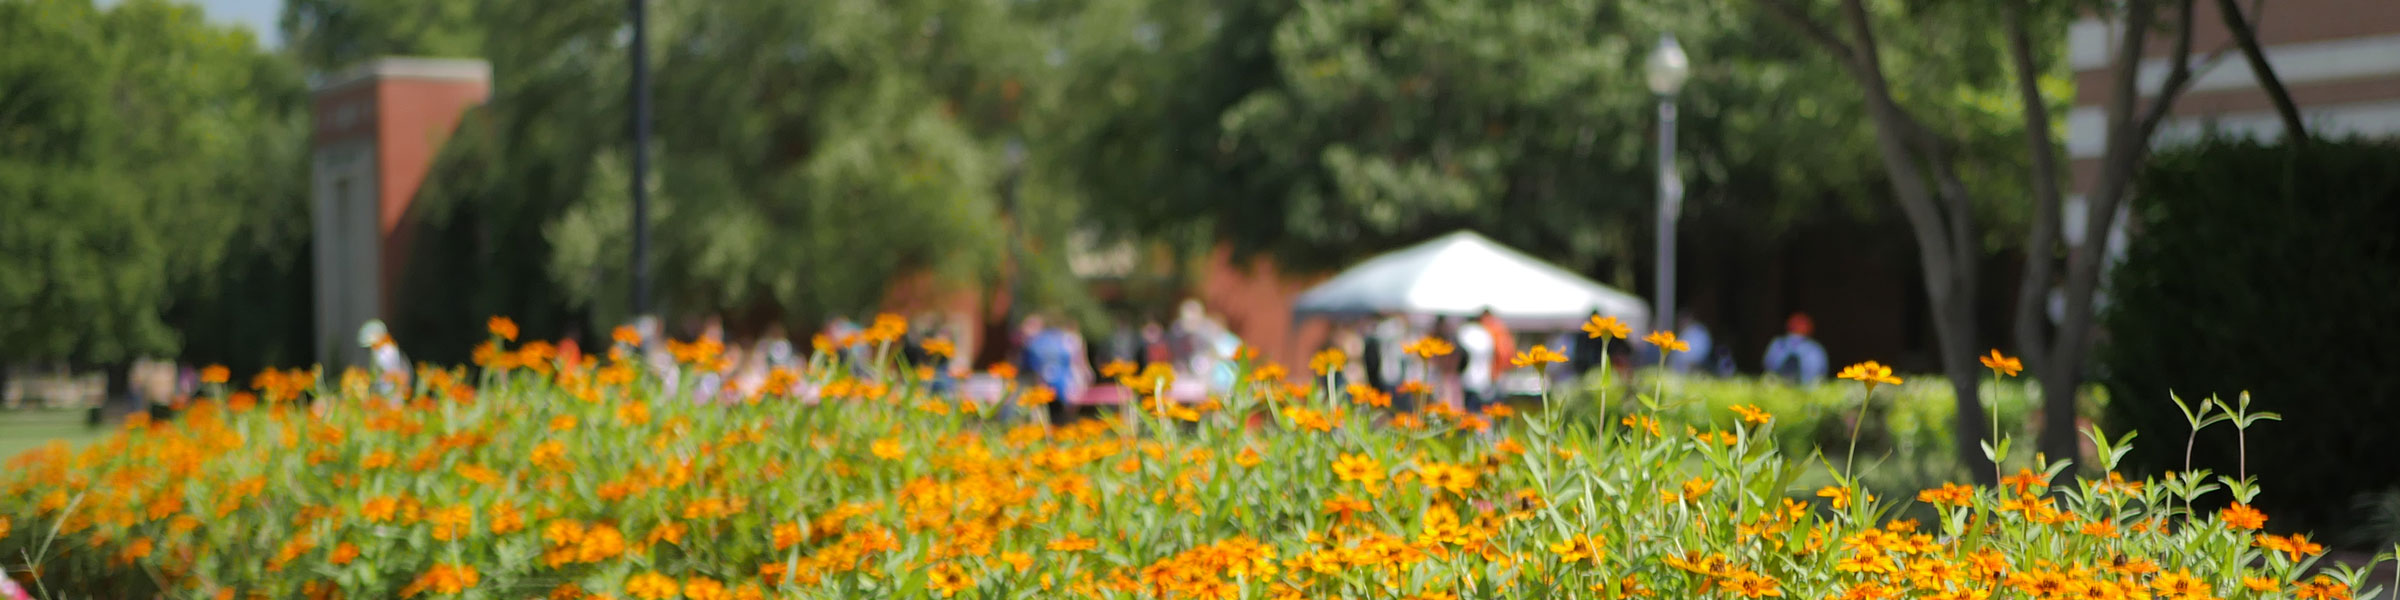 campus lawn with flowers in foreground